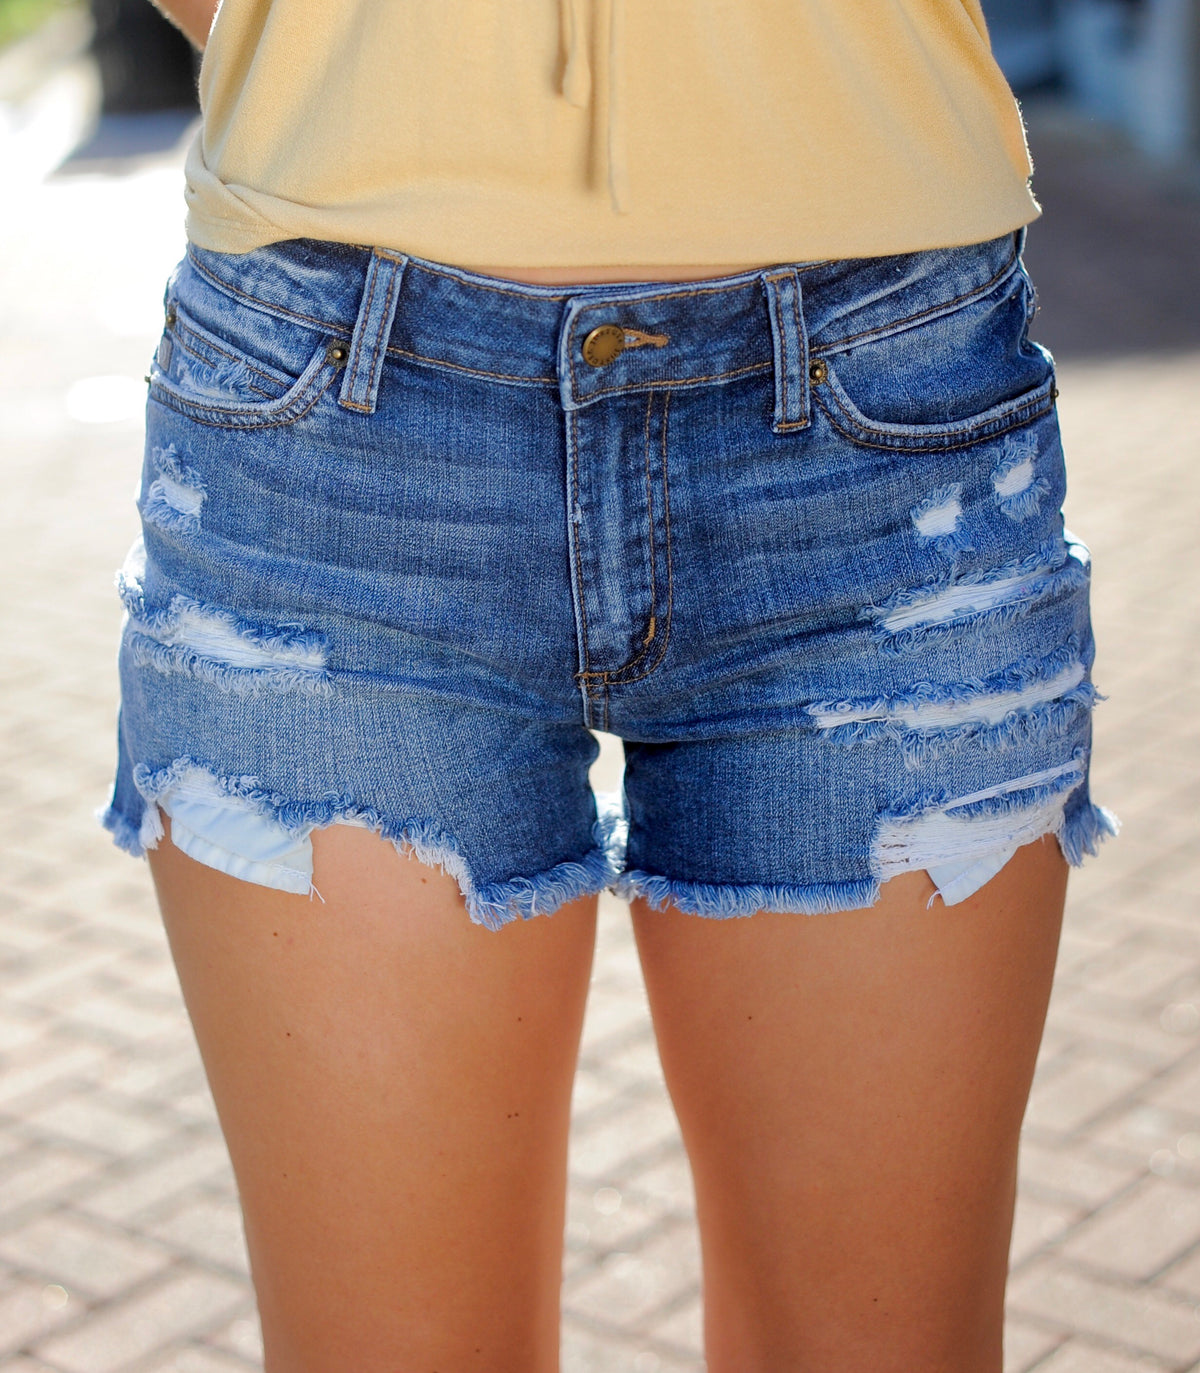 Sarah Distressed Denim Shorts - Medium Wash